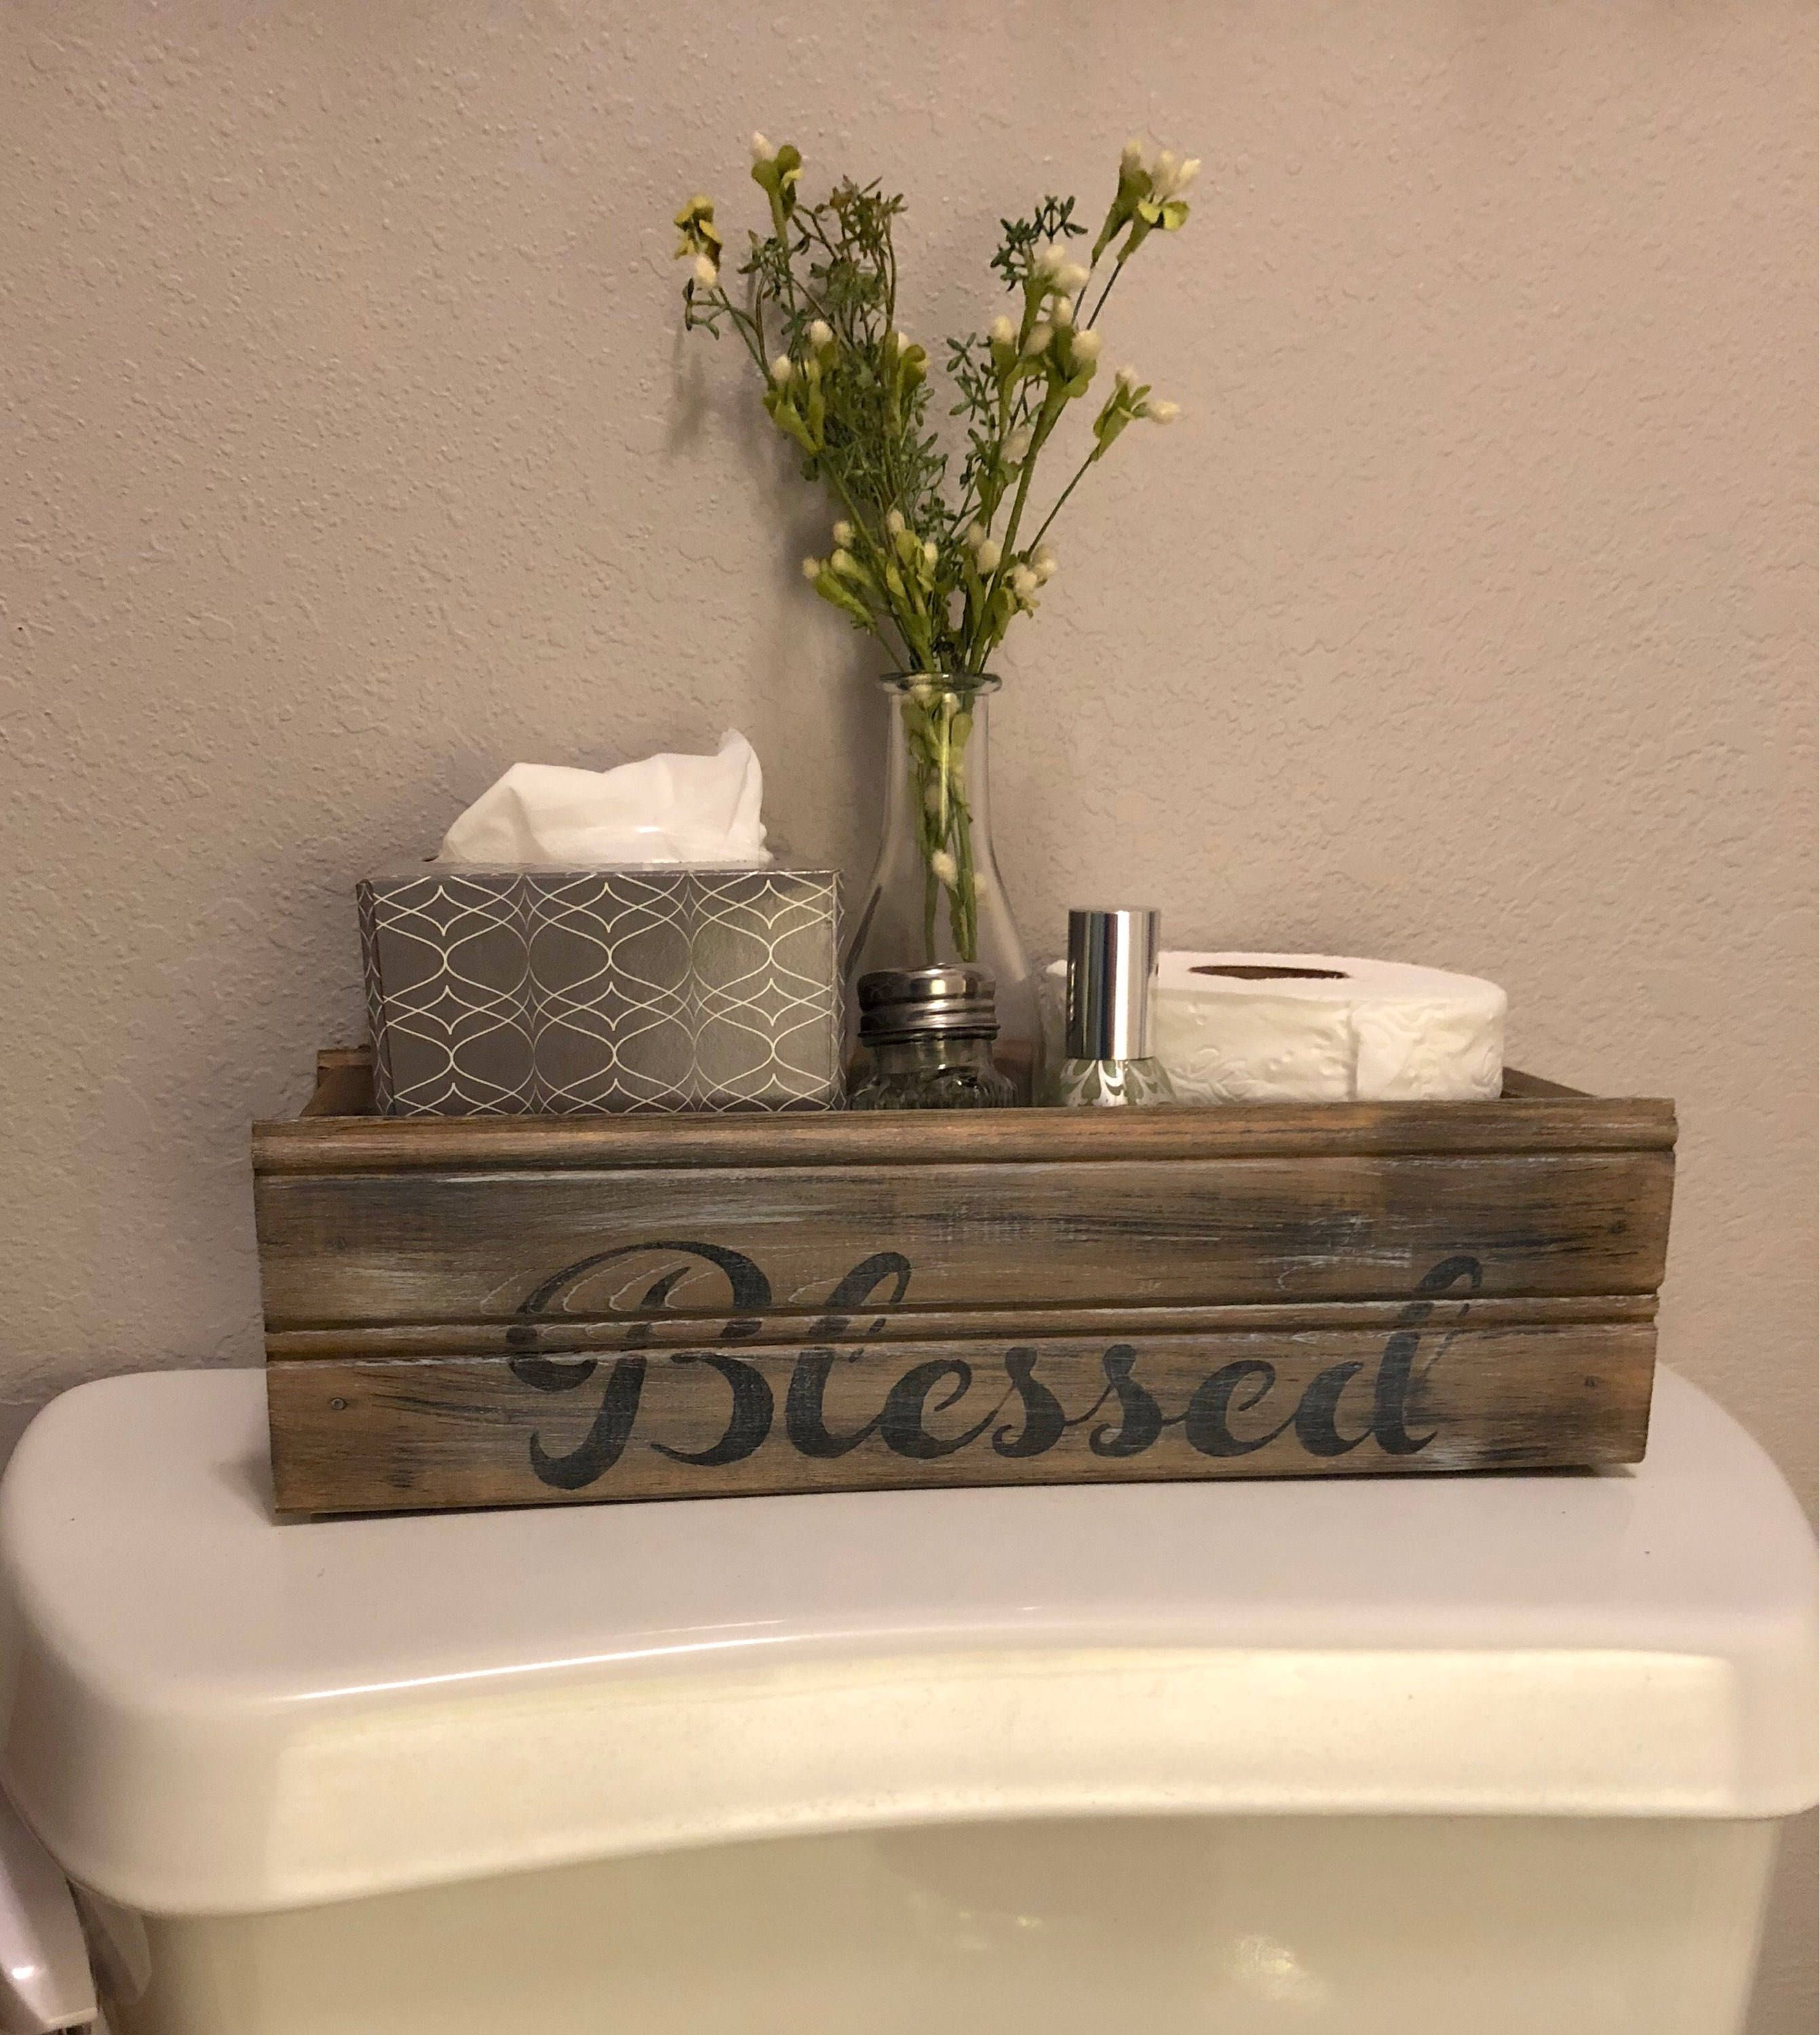 Blessed Farmhouse Style Box For Back Of Toilet Farmhouse Decor Table Centerpiece Mason Jar Crate Rustic Wood Crate Brown Stained Barn Decor Diy Home Decor Handmade Home Decor